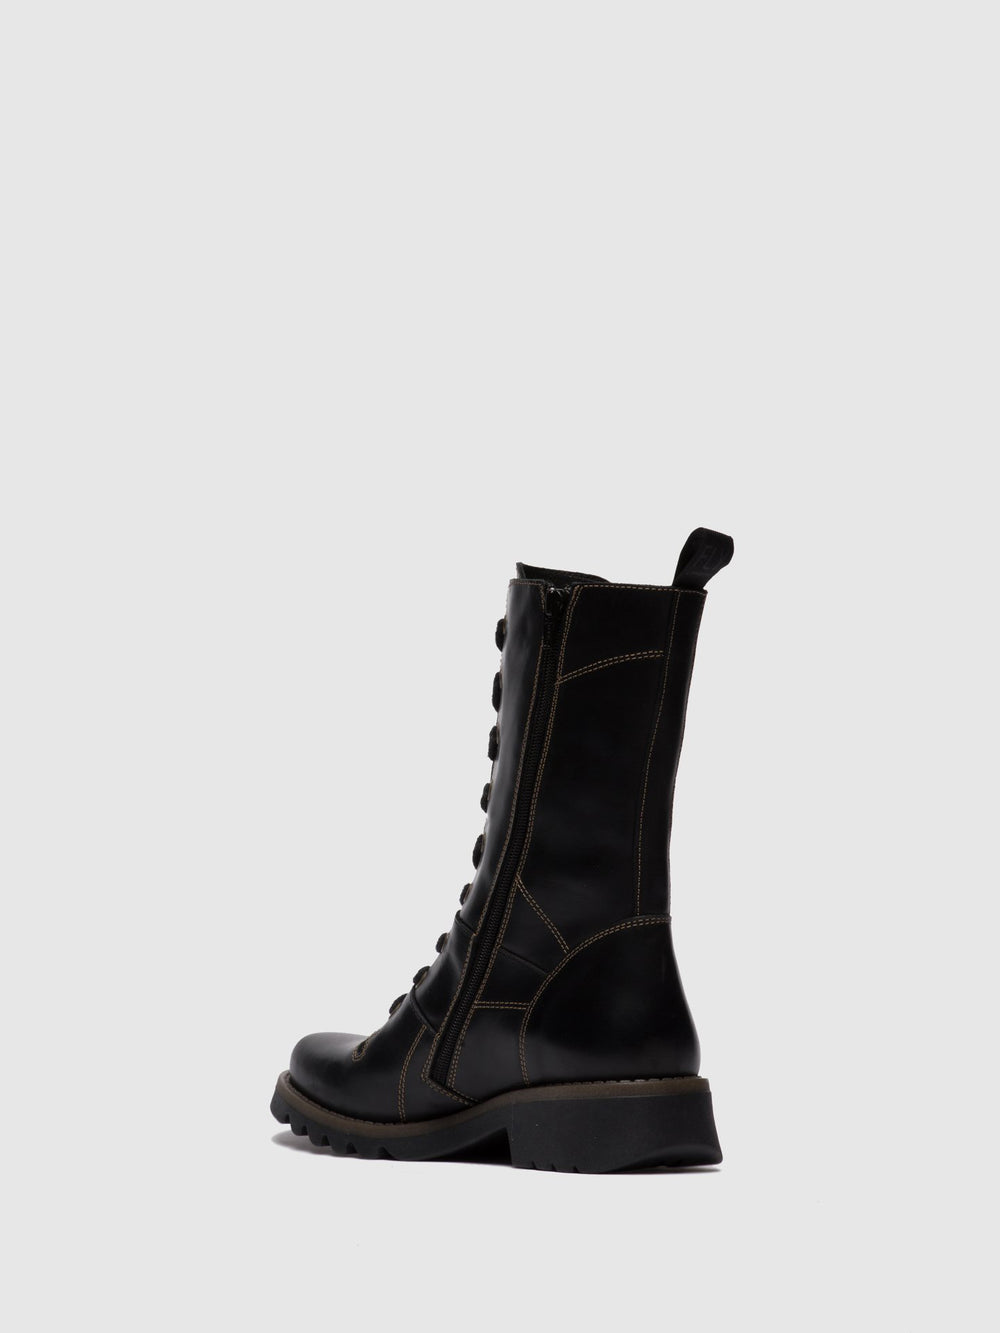 Lace-up Boots REBA640FLY RUG BLACK